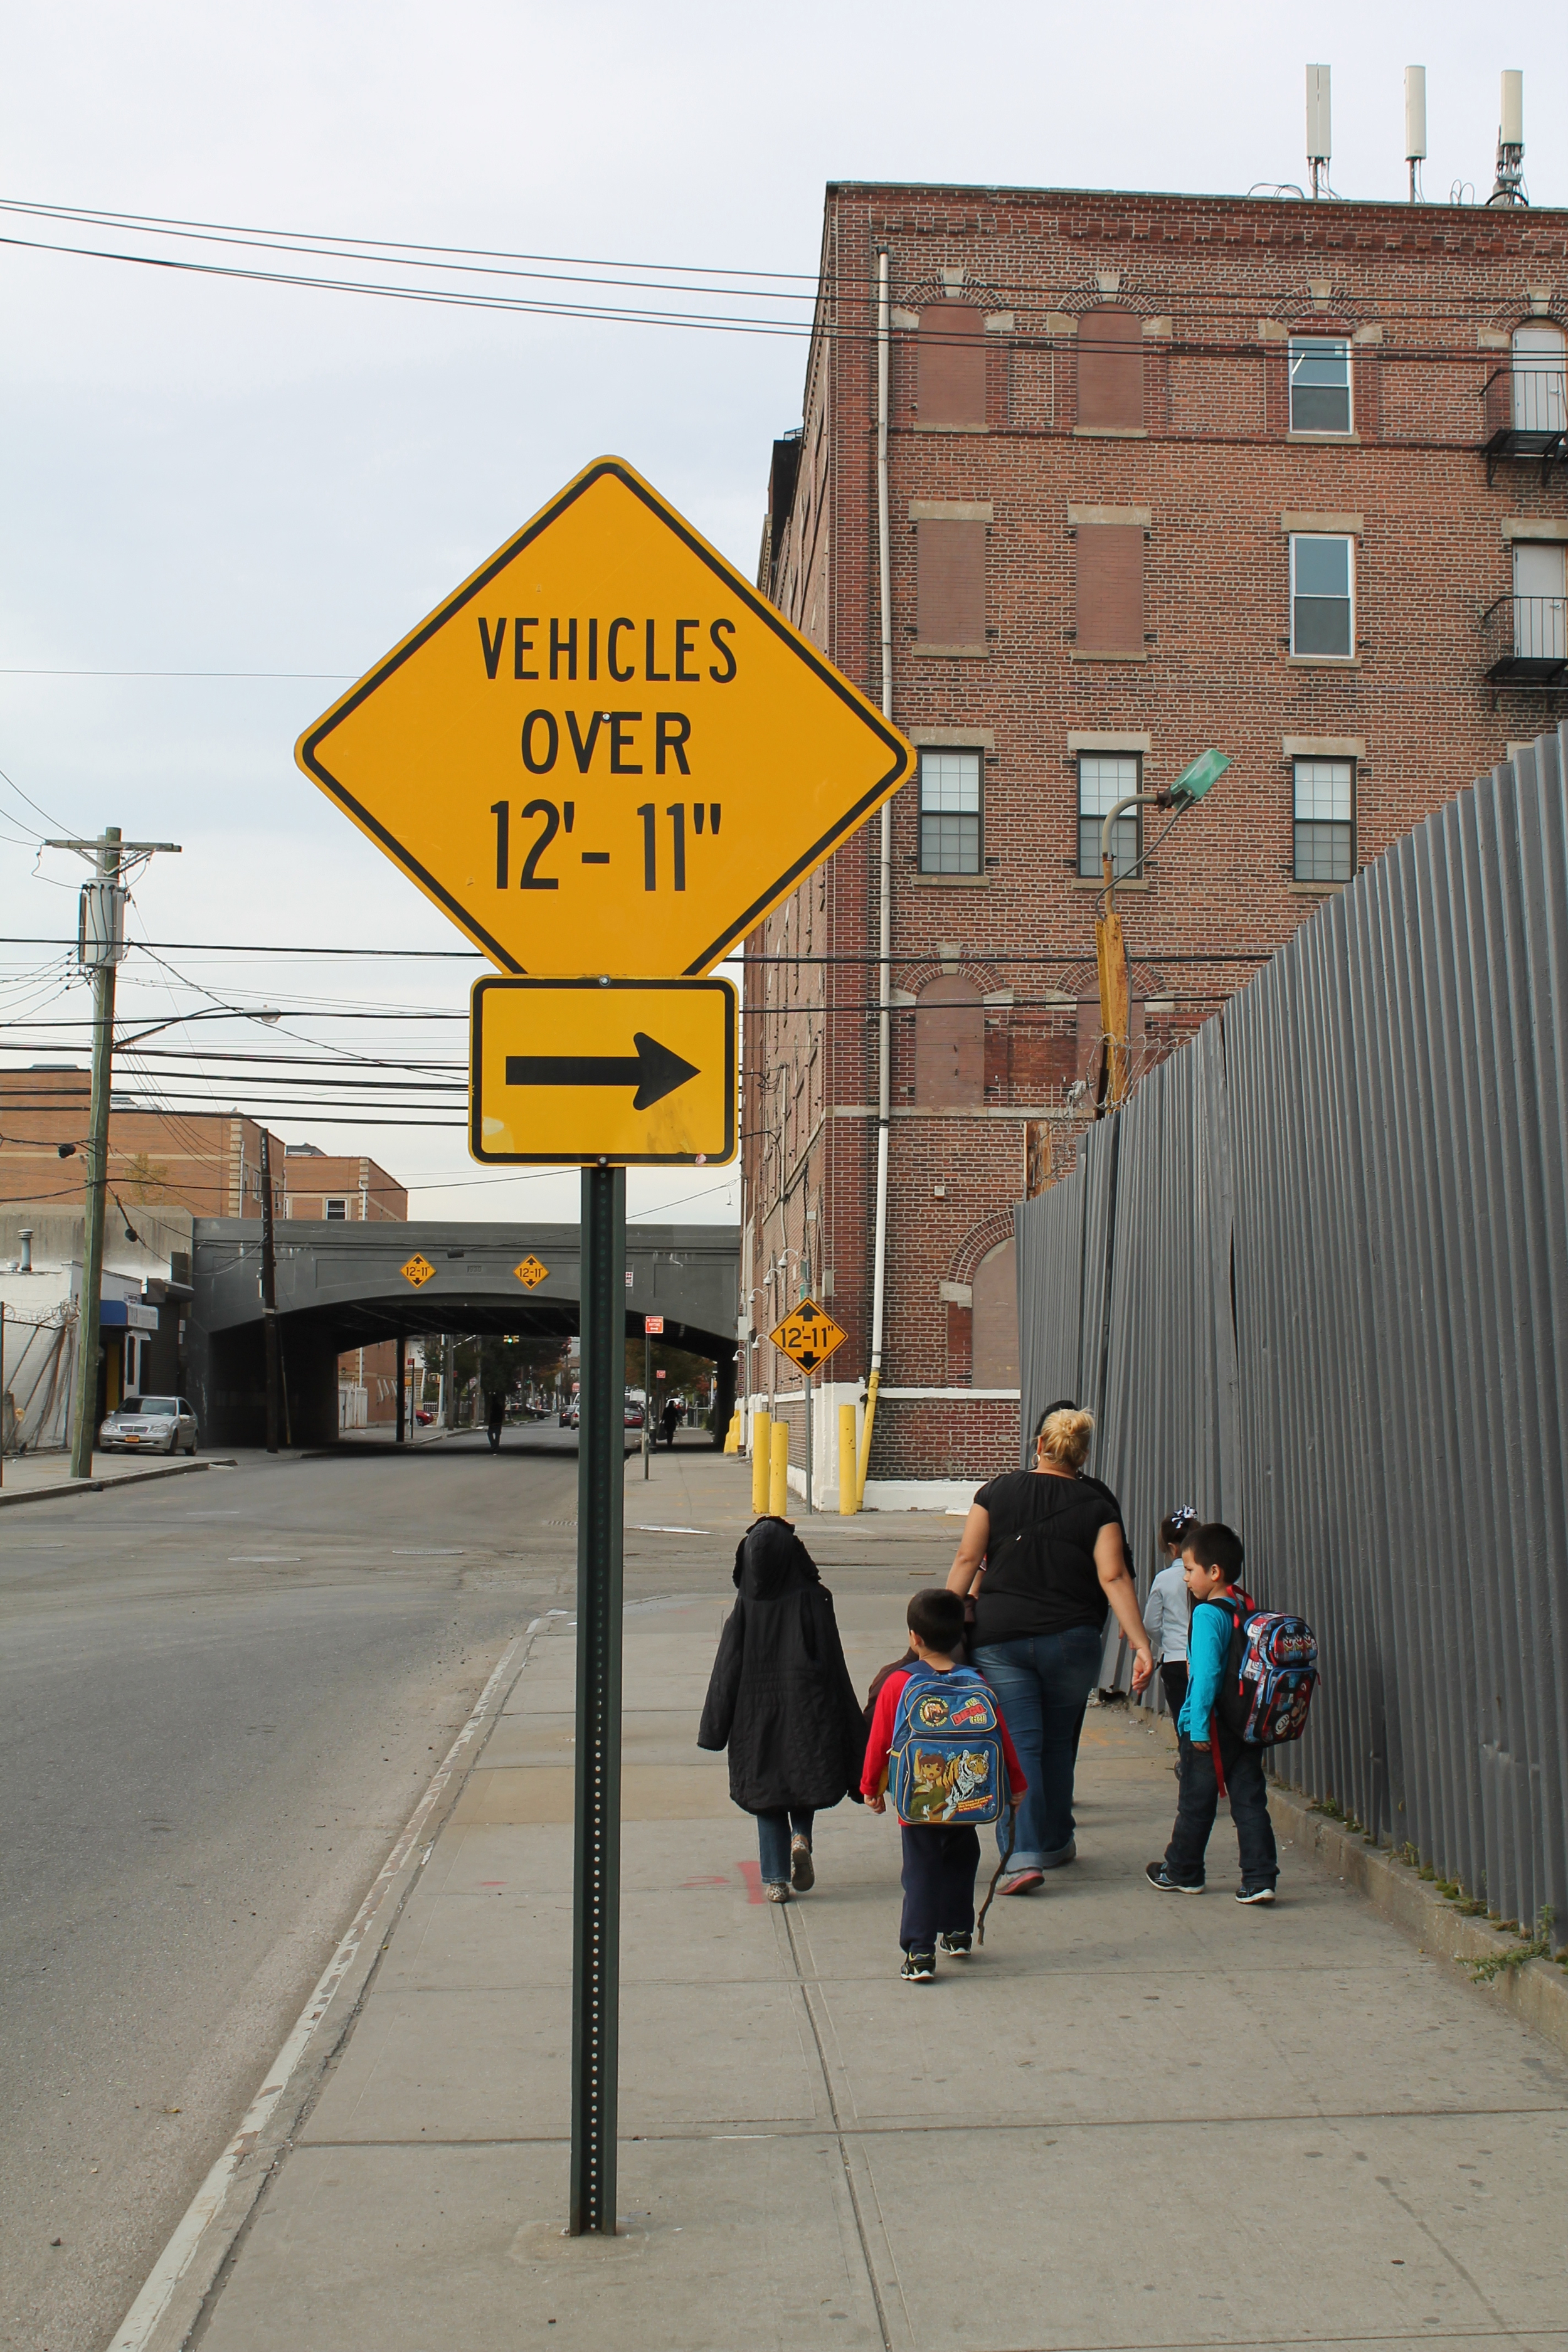 """The only visible traffic restriction along 170th Street is a ban on commercial trucks taller than 12'11"""", which must turn east onto Douglas Avenue. Trucks taller than that cannot clear the LIRR overpass in the background. Some community residents believe that this traffic sign may implicitly approve the use of 170th Street by shorter, but still large and heavy, commercial trucks.  Source : Louis Flores"""